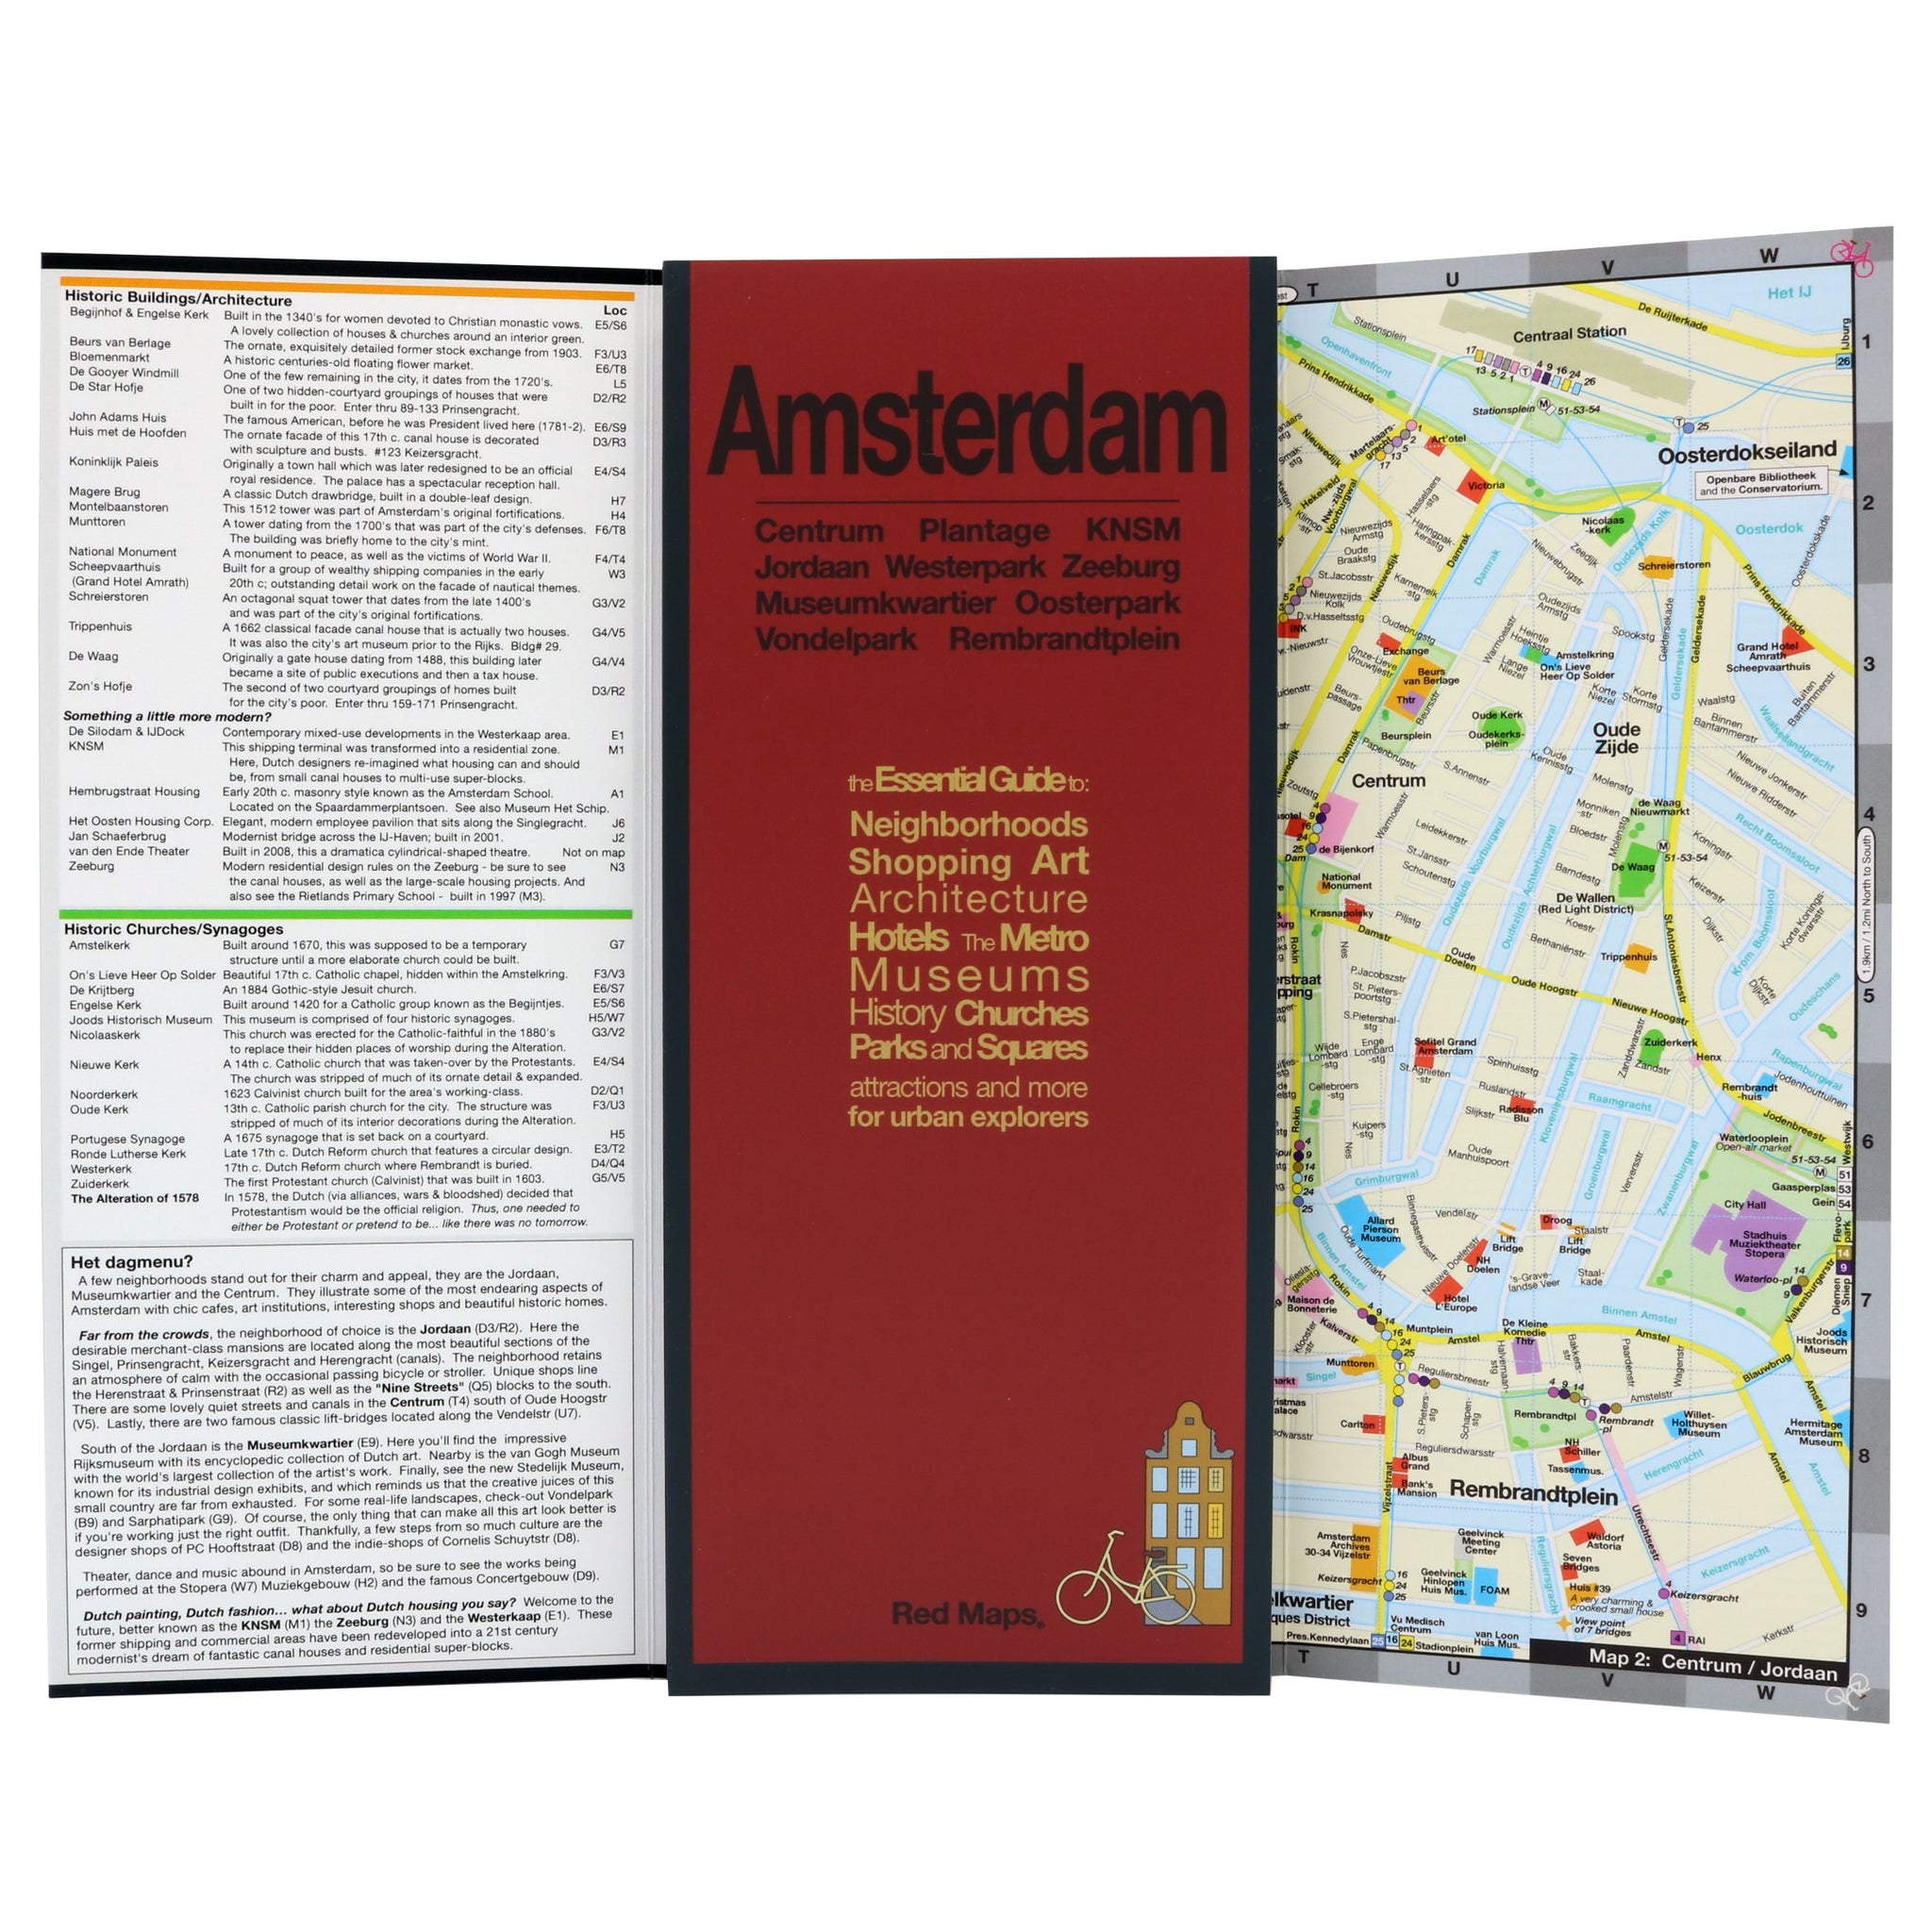 Travel Map of central Amsterdam's historic sites and neighborhoods